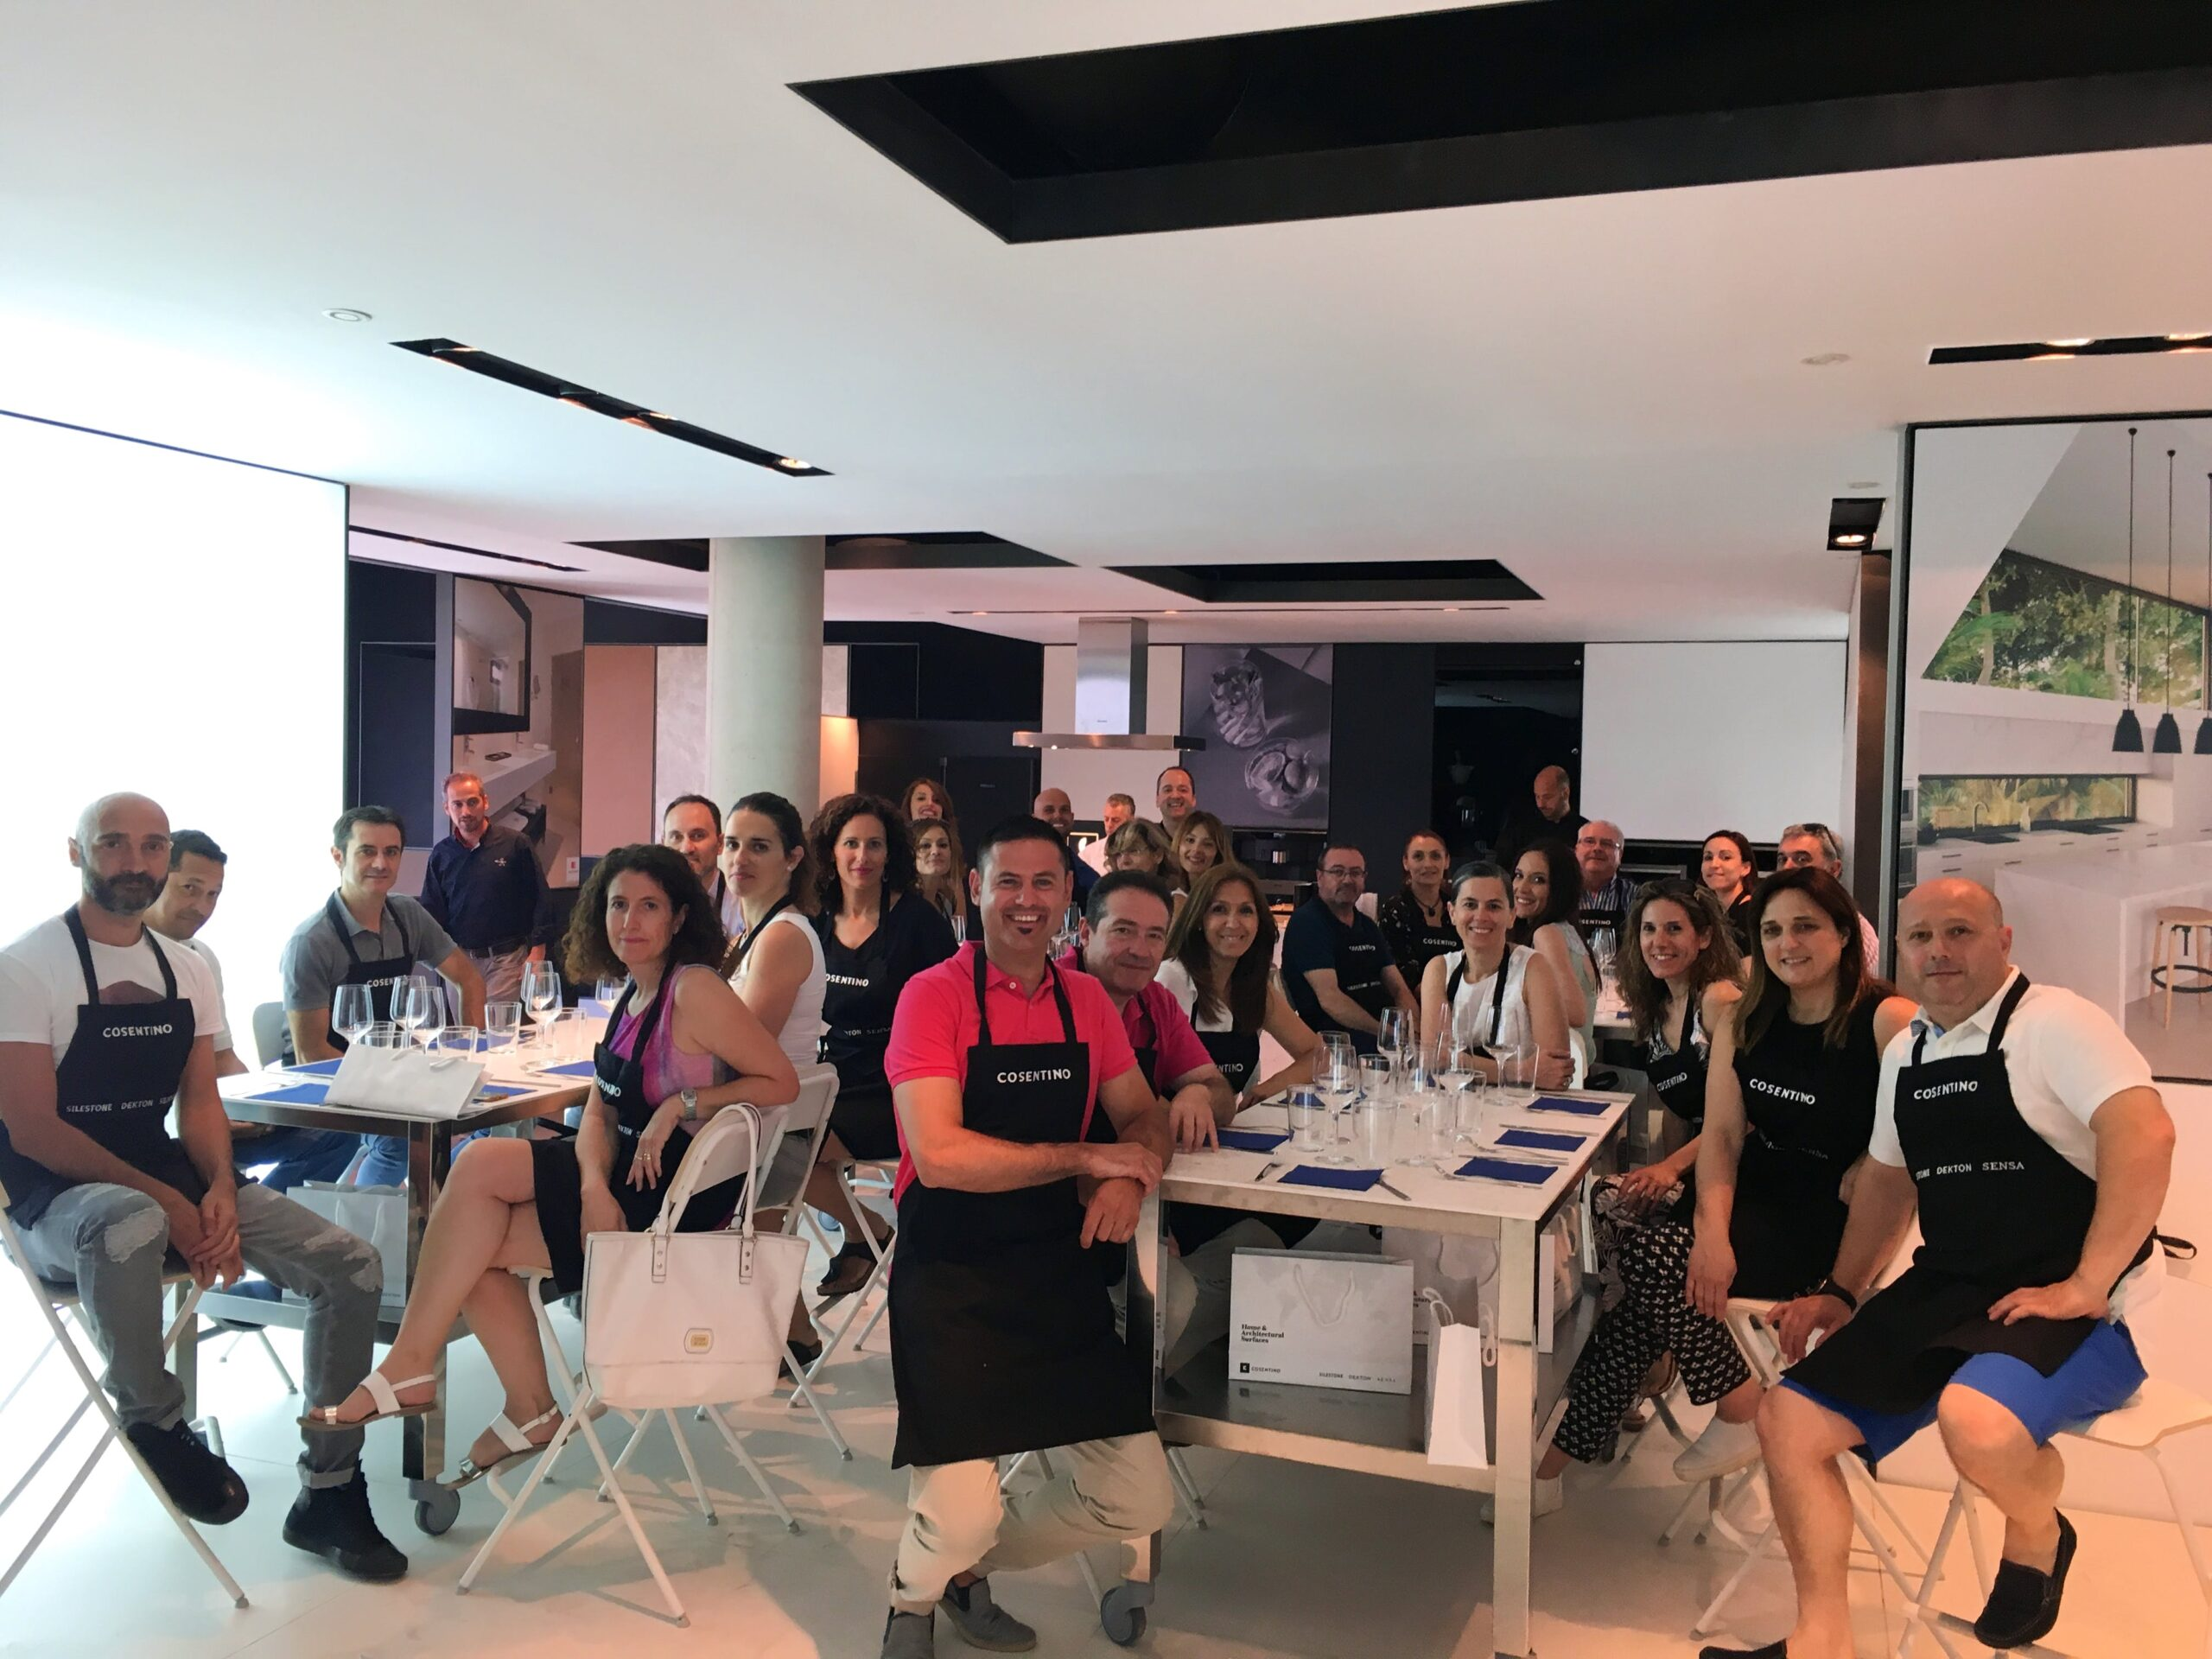 Image of Aula Showcooking en Cosentino Valencia Center 2 scaled in Cosentino brings together more than 2,000 k&b professionals - Cosentino